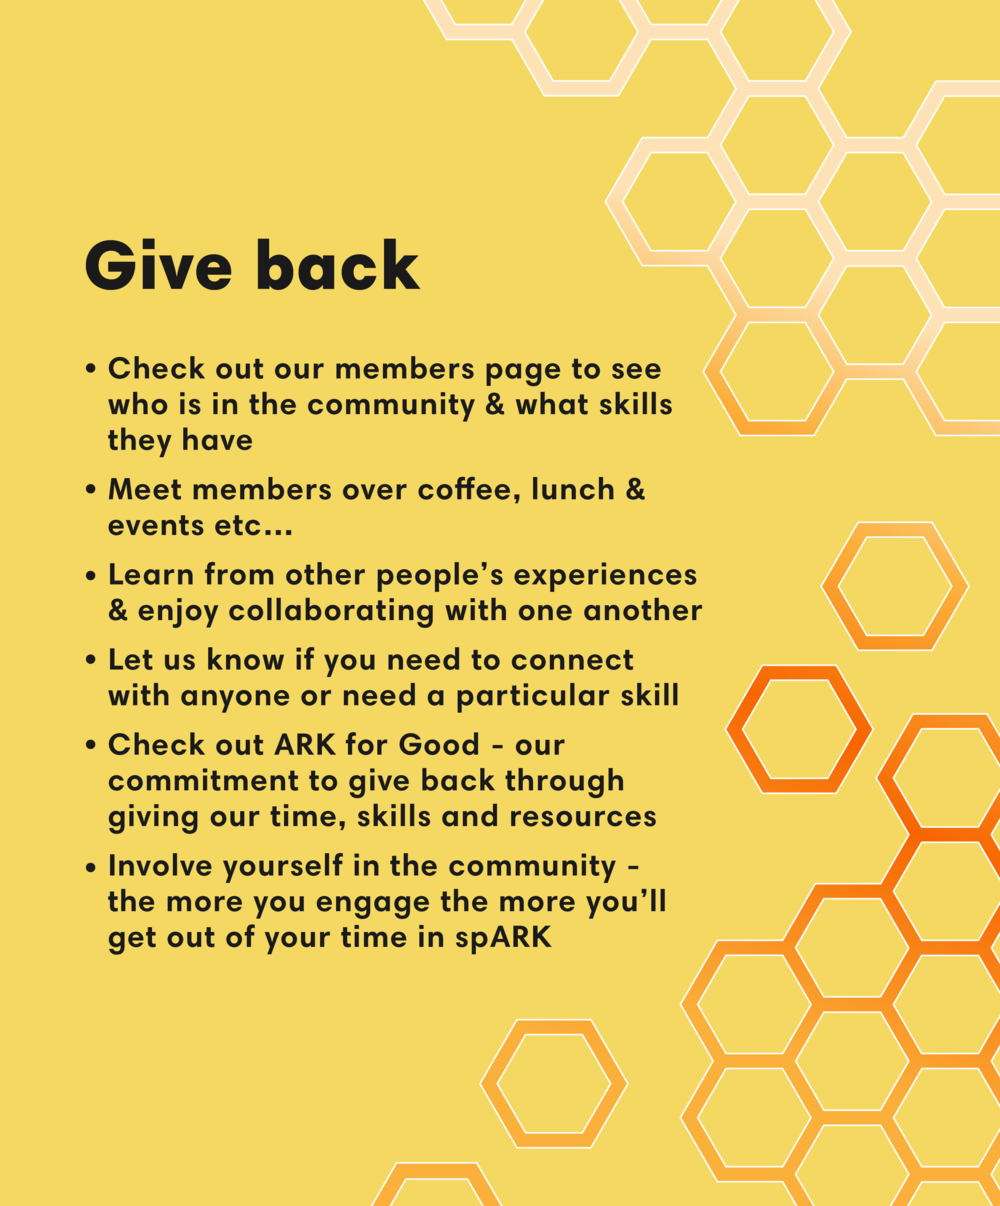 Give back-05-05.png